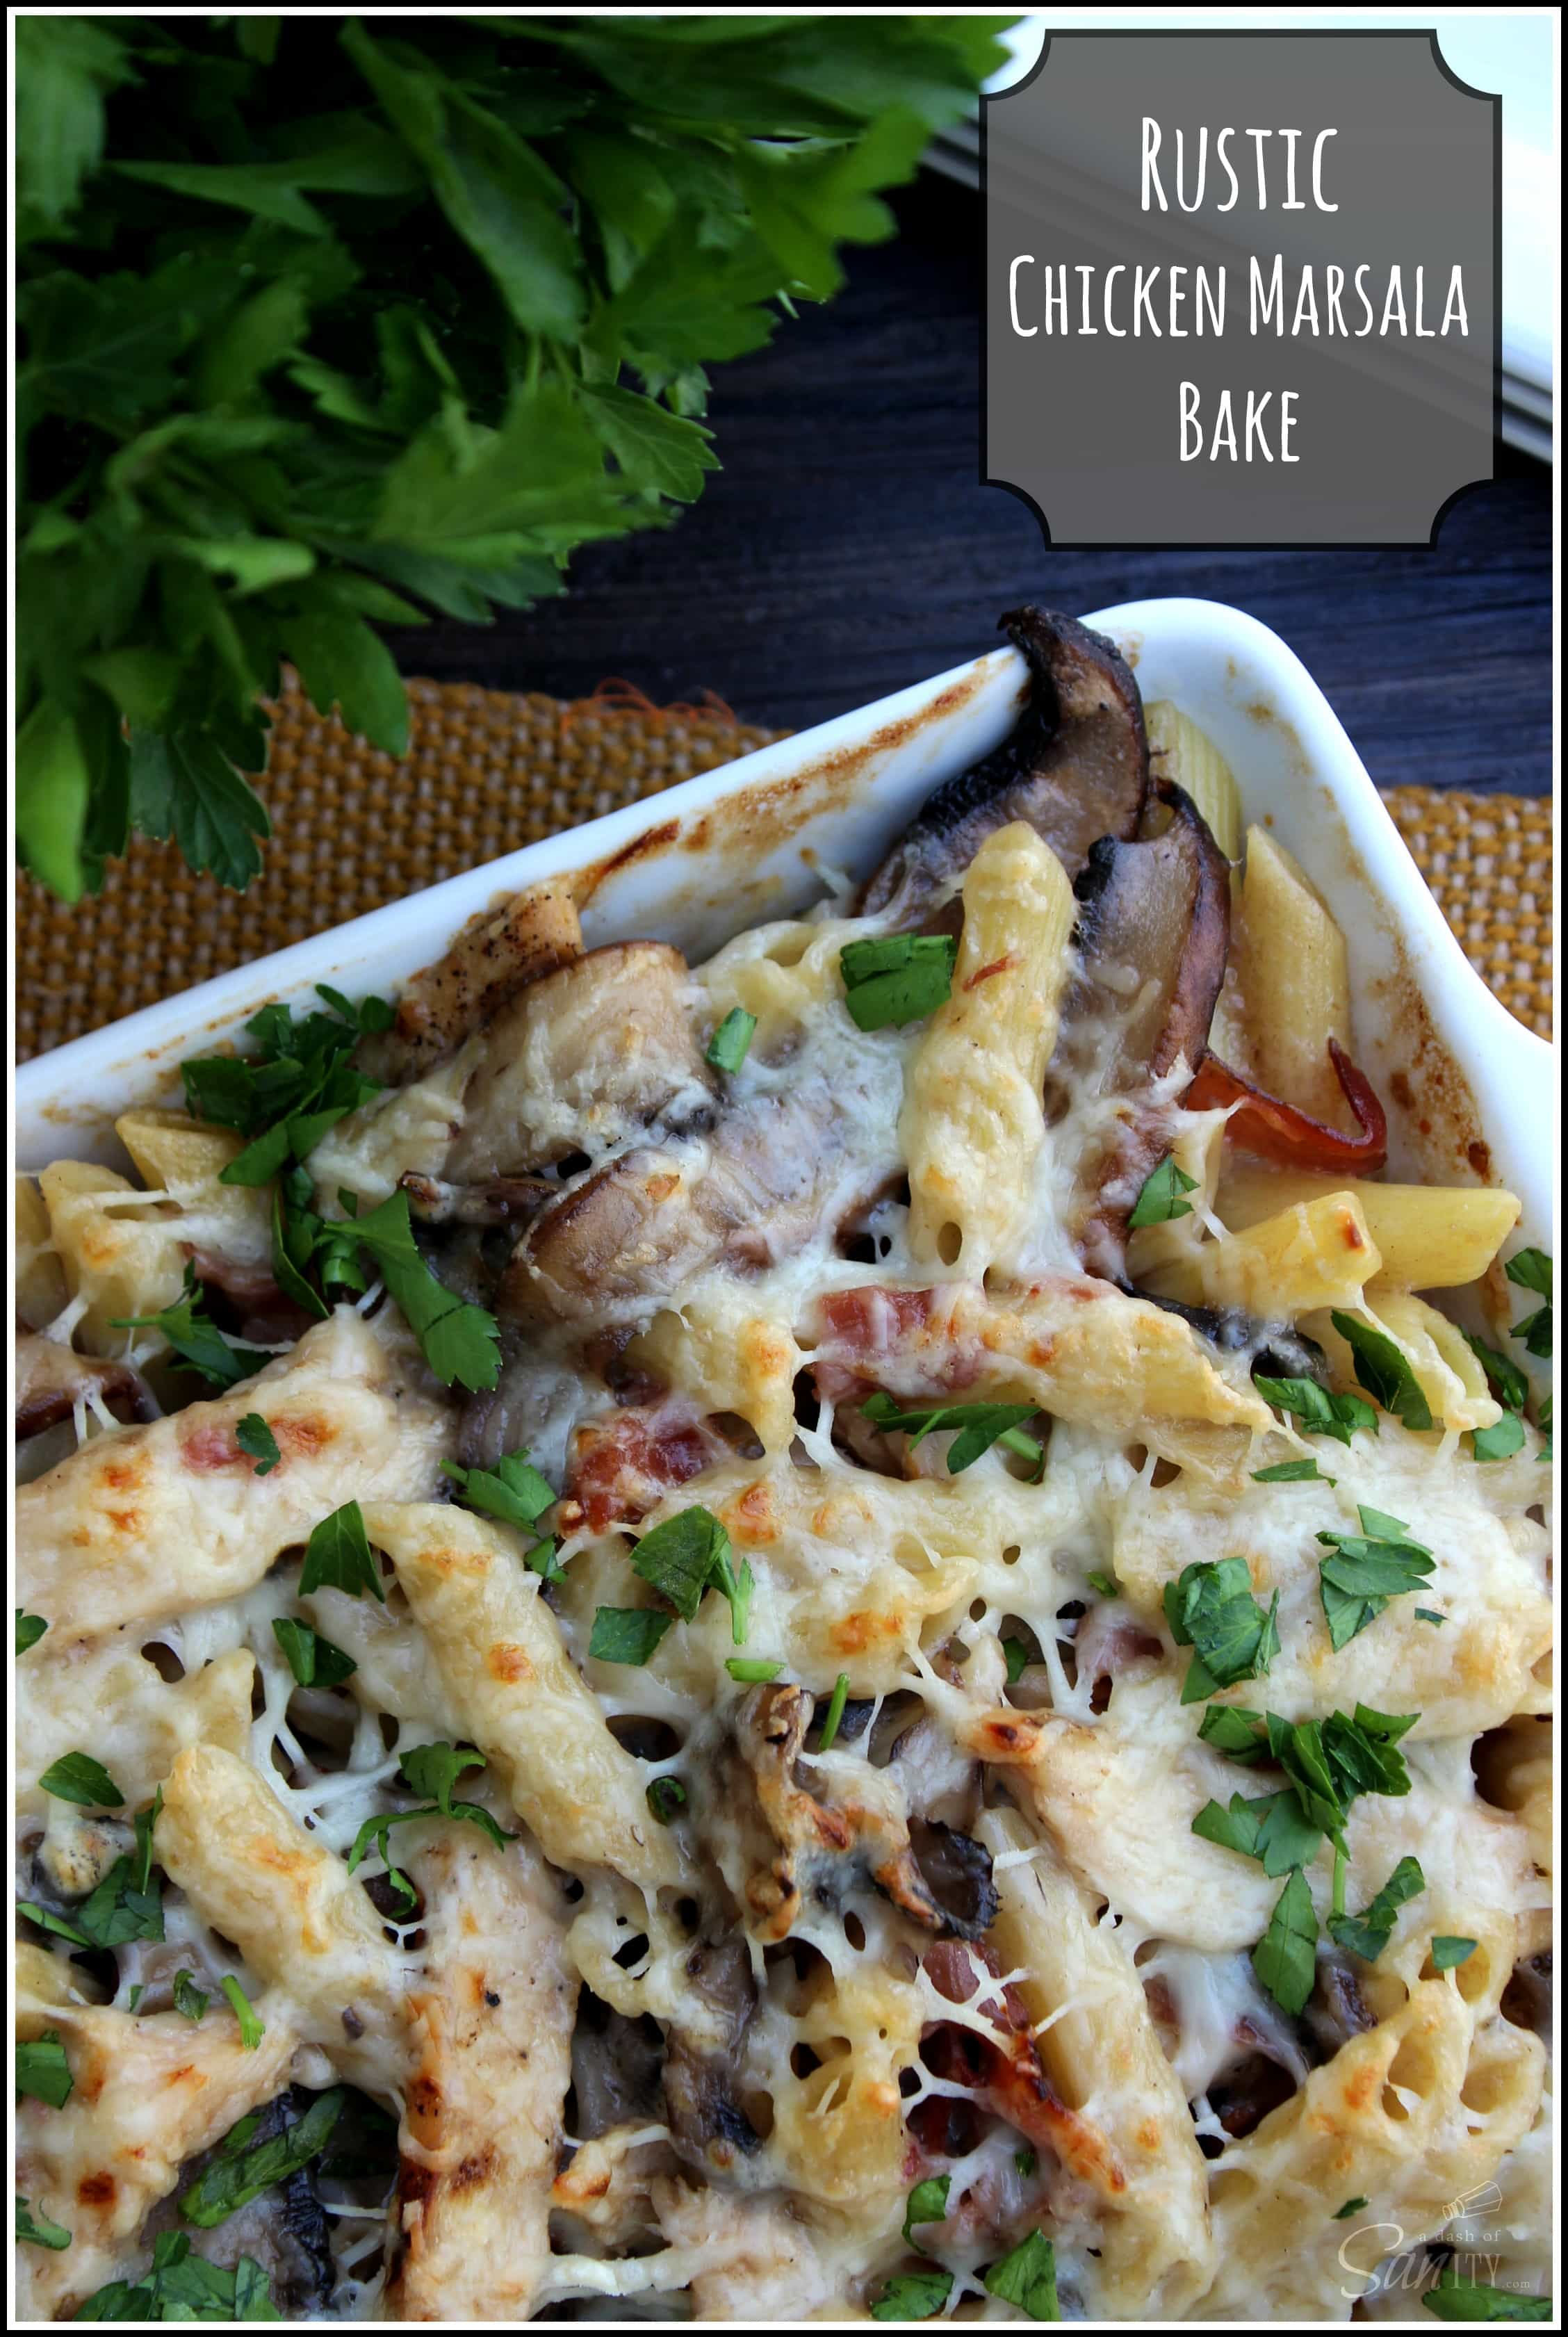 Rustic Chicken Marsala Bake